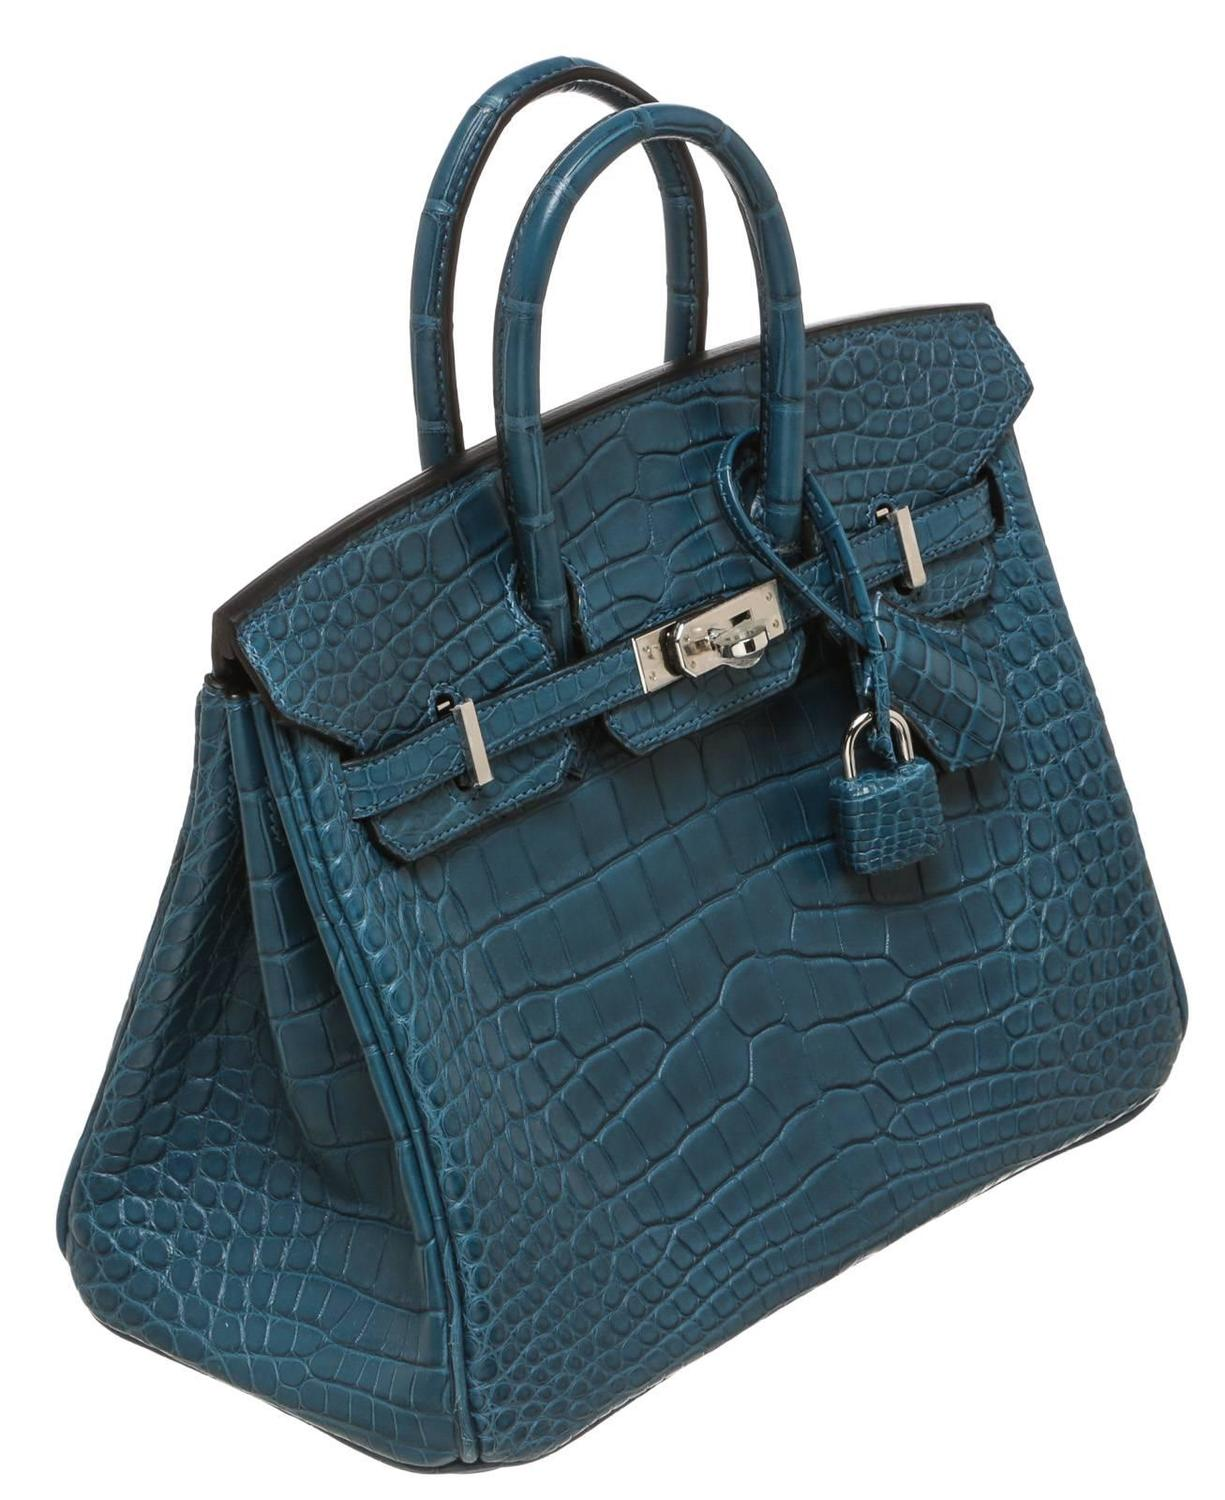 Hermes Colvert (Blue) Birkin 25cm Alligator Handbag PHW NEW at 1stdibs